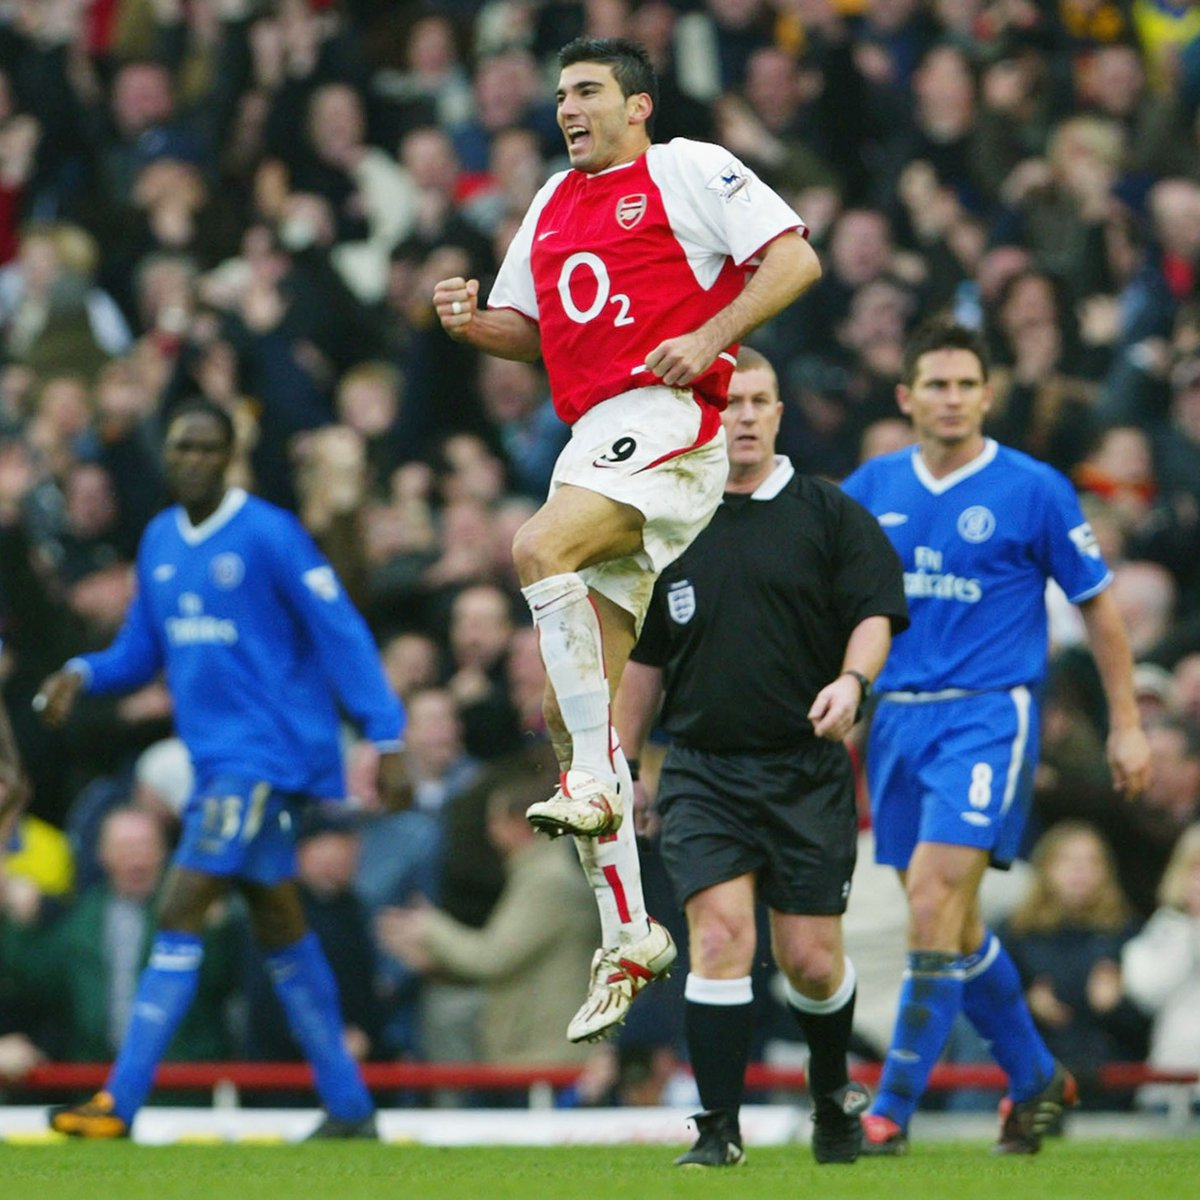 #OTD 2004 ⚽️ Jose Antonio Reyes strikes twice in five minutes - his first goals for Arsenal - as the Gunners' come from behind in the #FACup  5th round at Highbury.  Arsenal had now ended Chelsea's FA Cup ambitions for the fourth successive season.